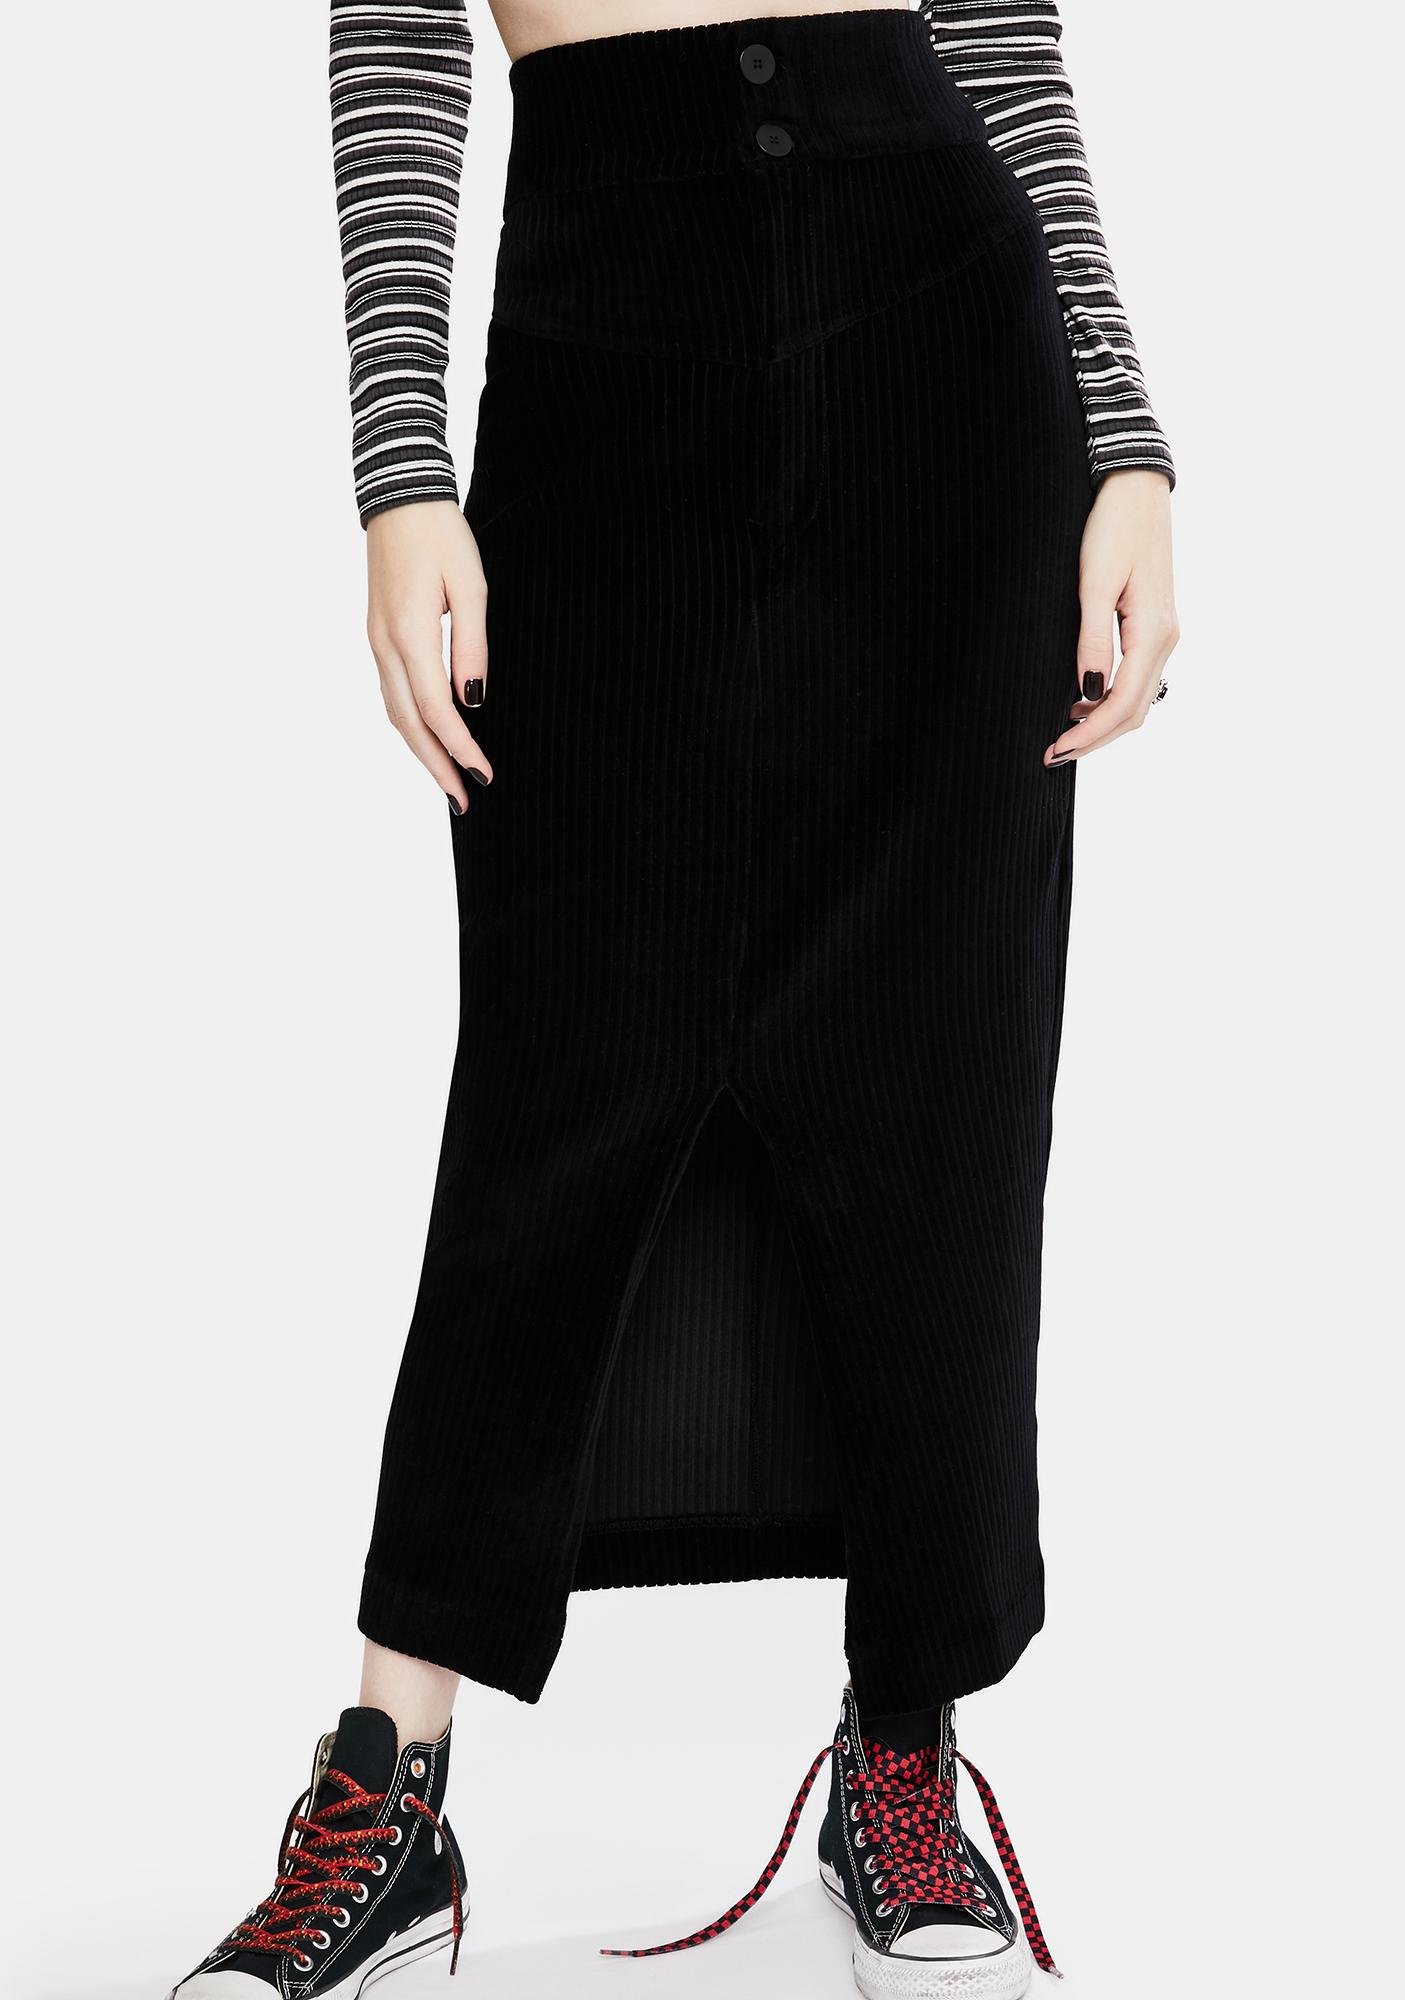 Free People Roxy Rib Pencil Skirt